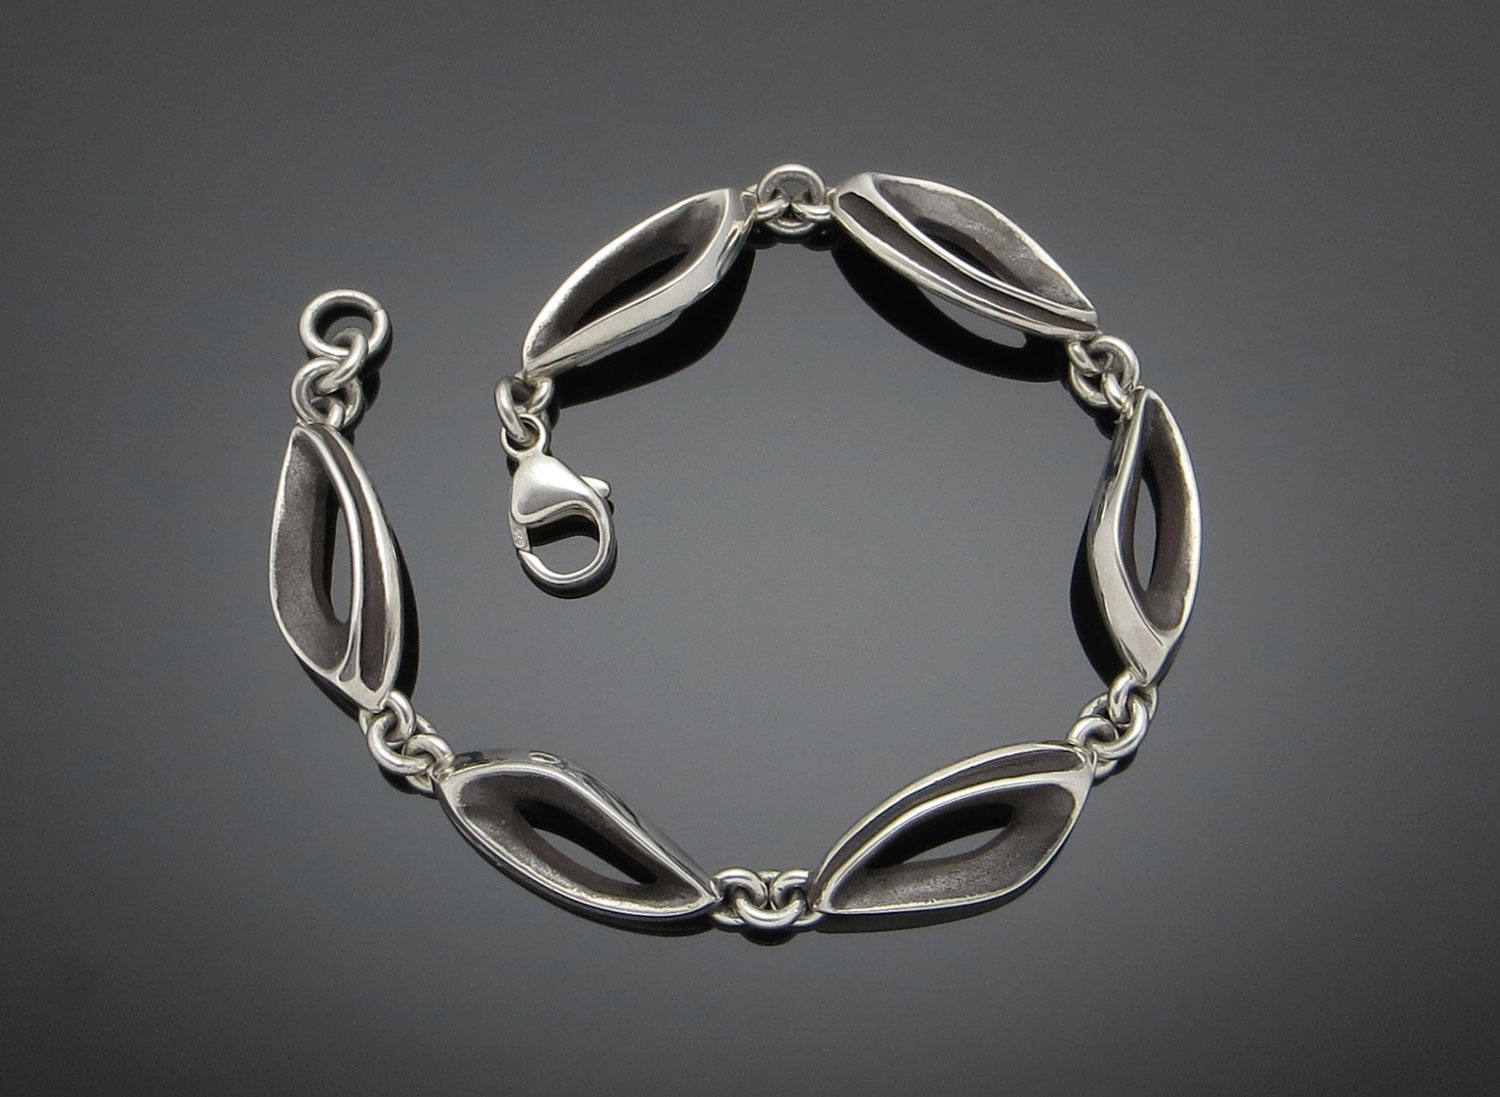 #116 Hollow Ground bracelet